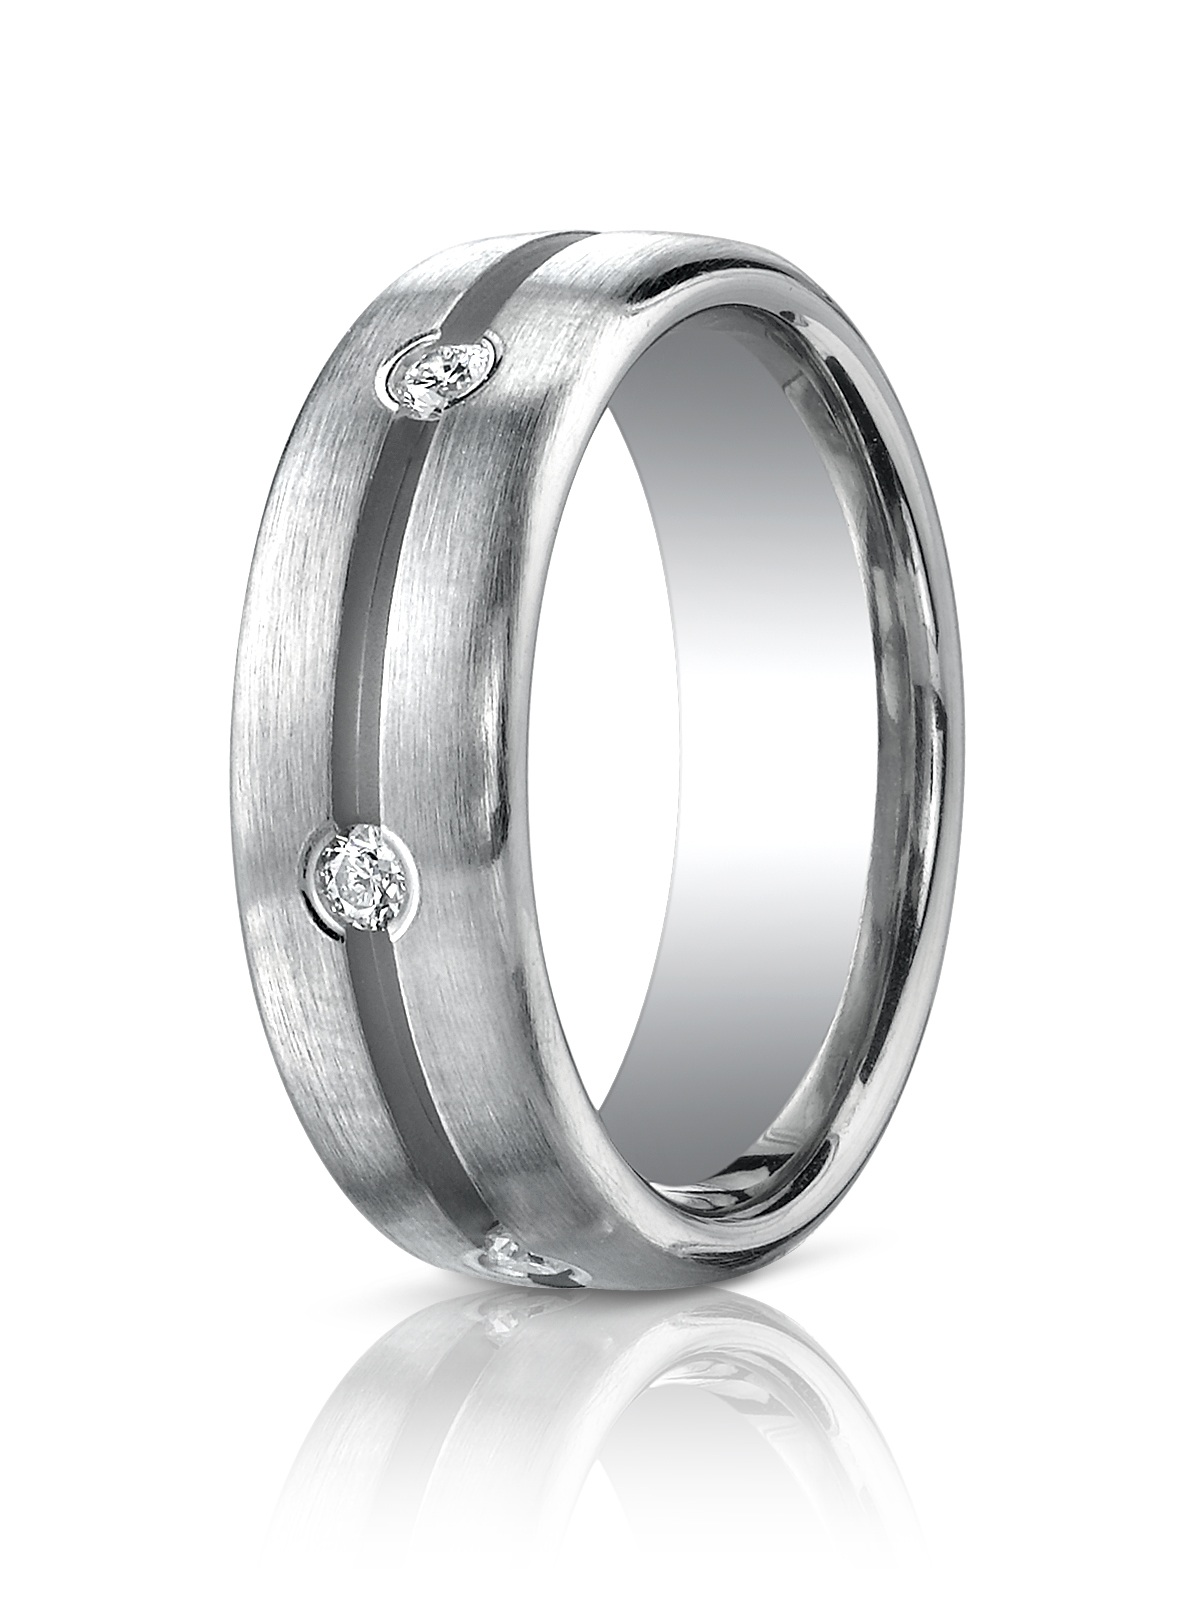 4 platinum wedding bands Benchmark Platinum wedding band by Benchmark